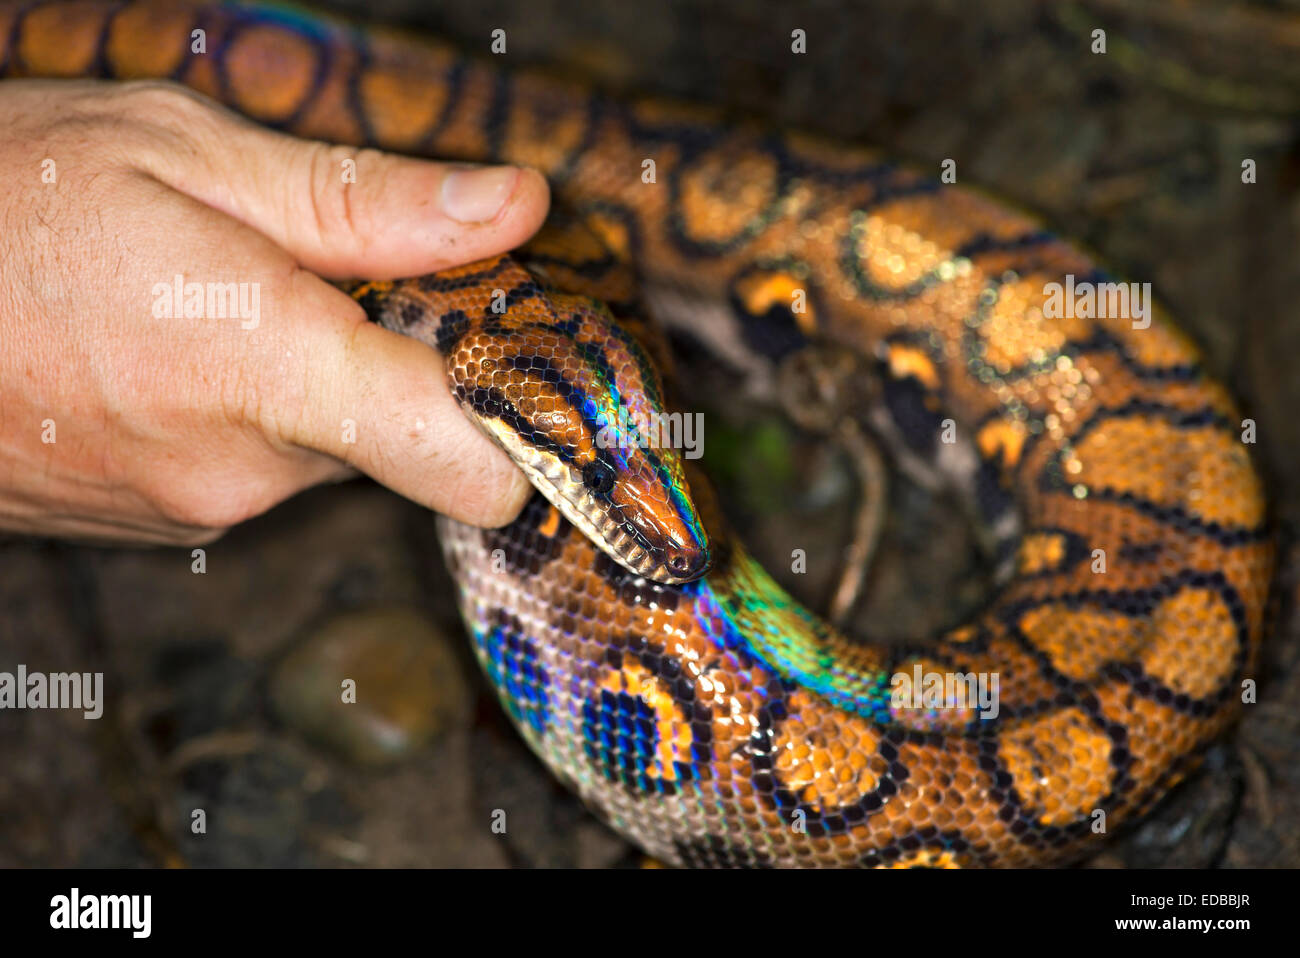 Freshly molted Rainbow Boa (Epicrates cenchria), Tambopata National Reserve, Madre de Dios, Peru Stock Photo